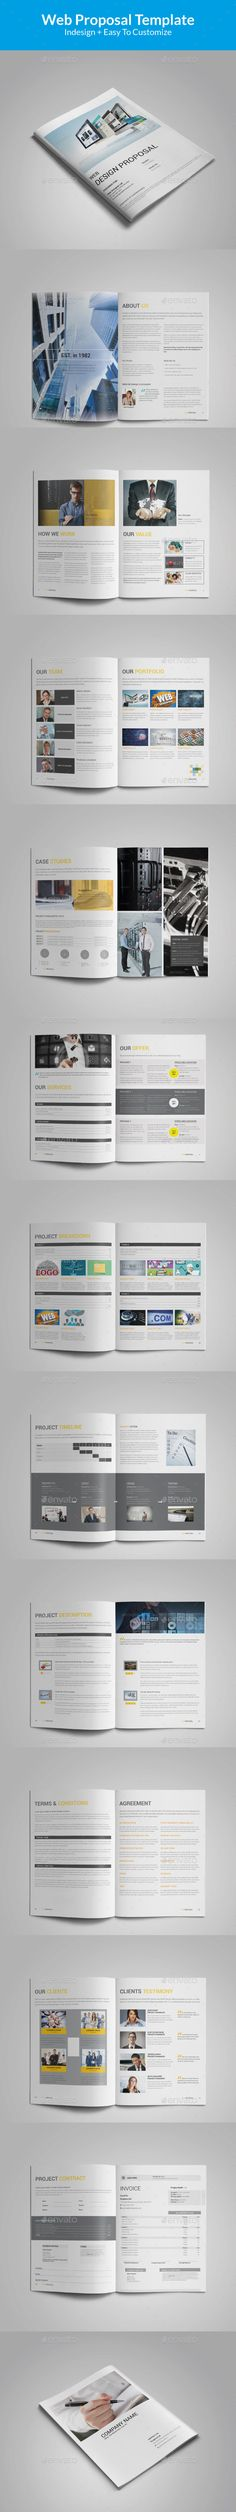 agency proposal template%0A Sparrow  Creative Agency Proposal Template   Proposals  Stationery and  Templates